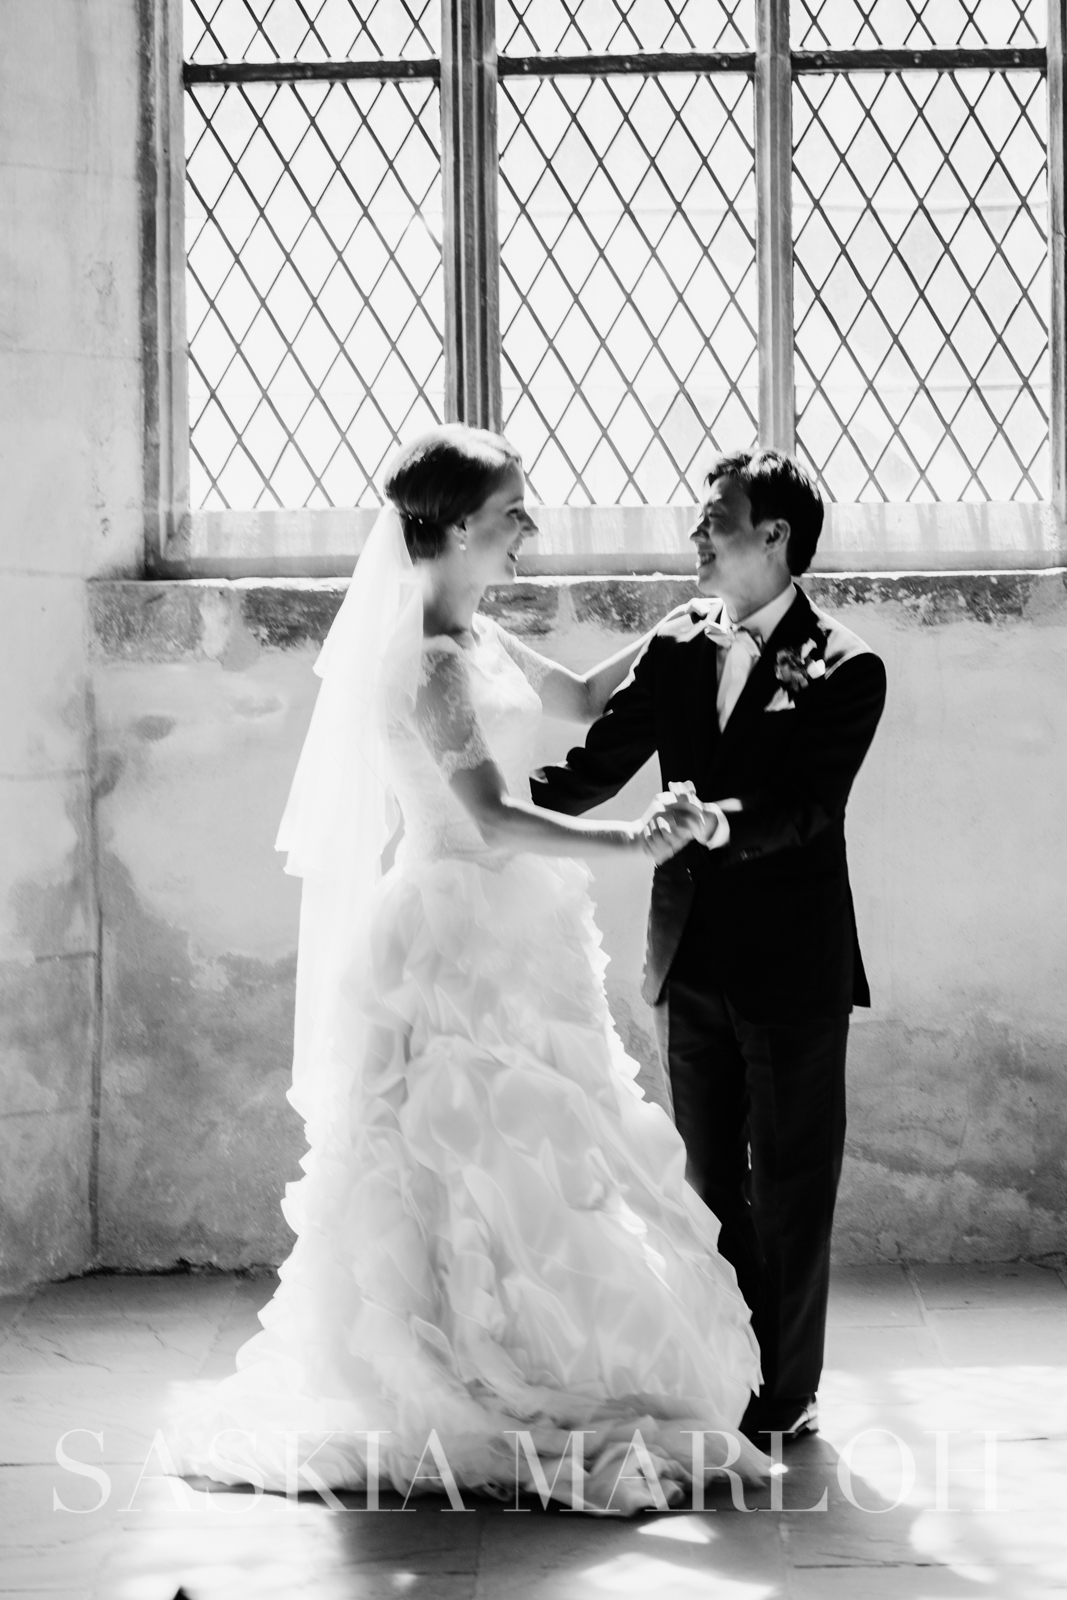 KLOSTER-EBERBACH-GERMAN-JAPANESE-WEDDING-HOCHZEIT-FOTO-PHOTO-SASKIA-MARLOH-03